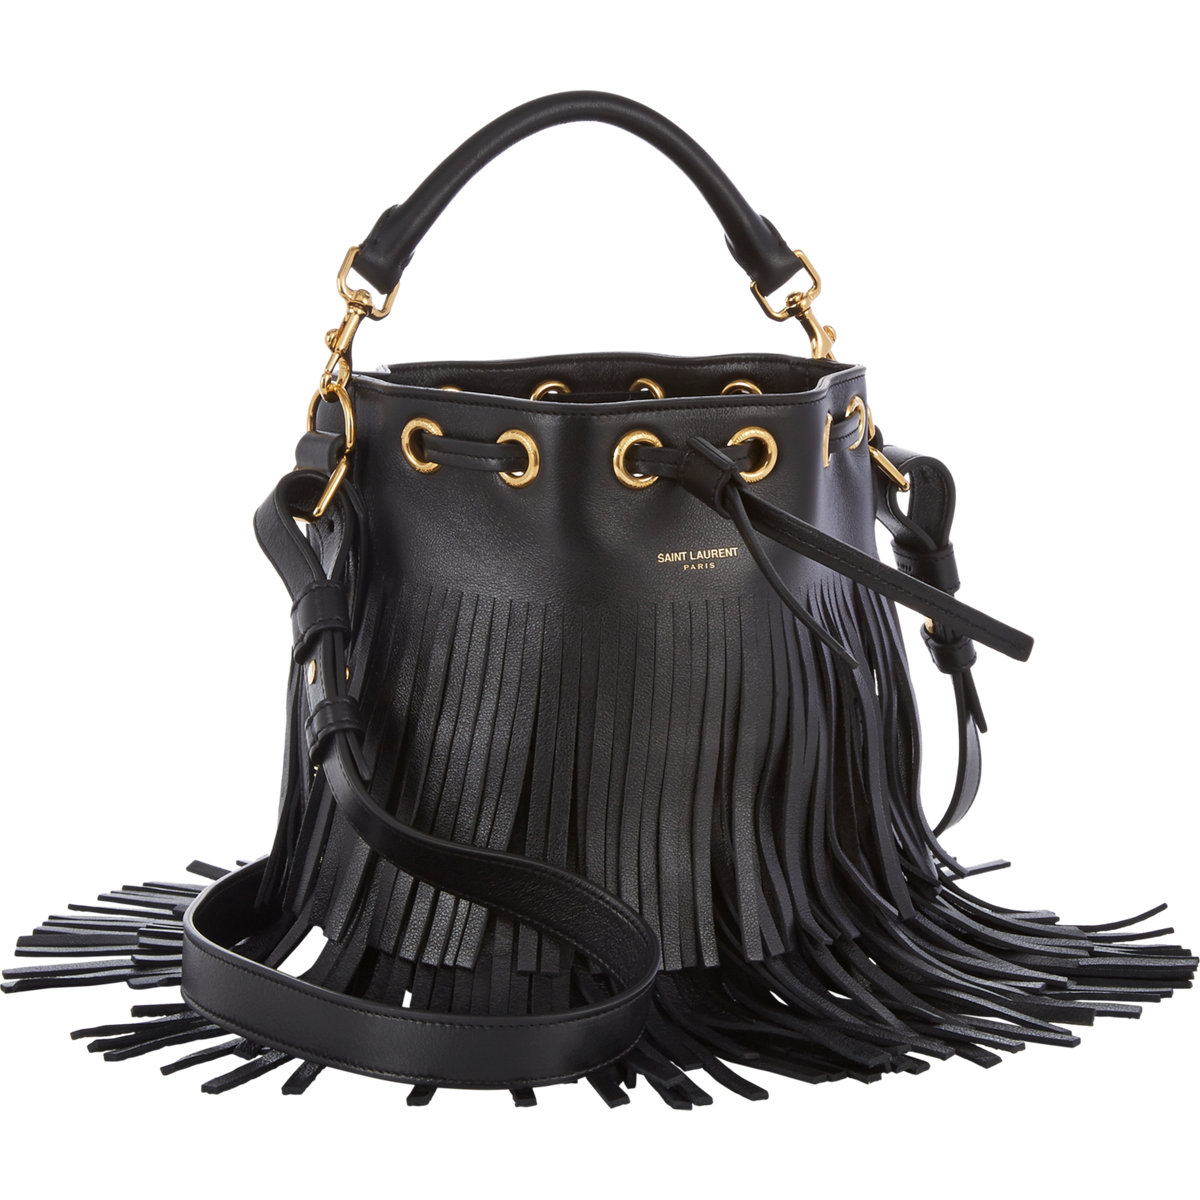 Saint laurent fringe small bucket bag at barneys.com